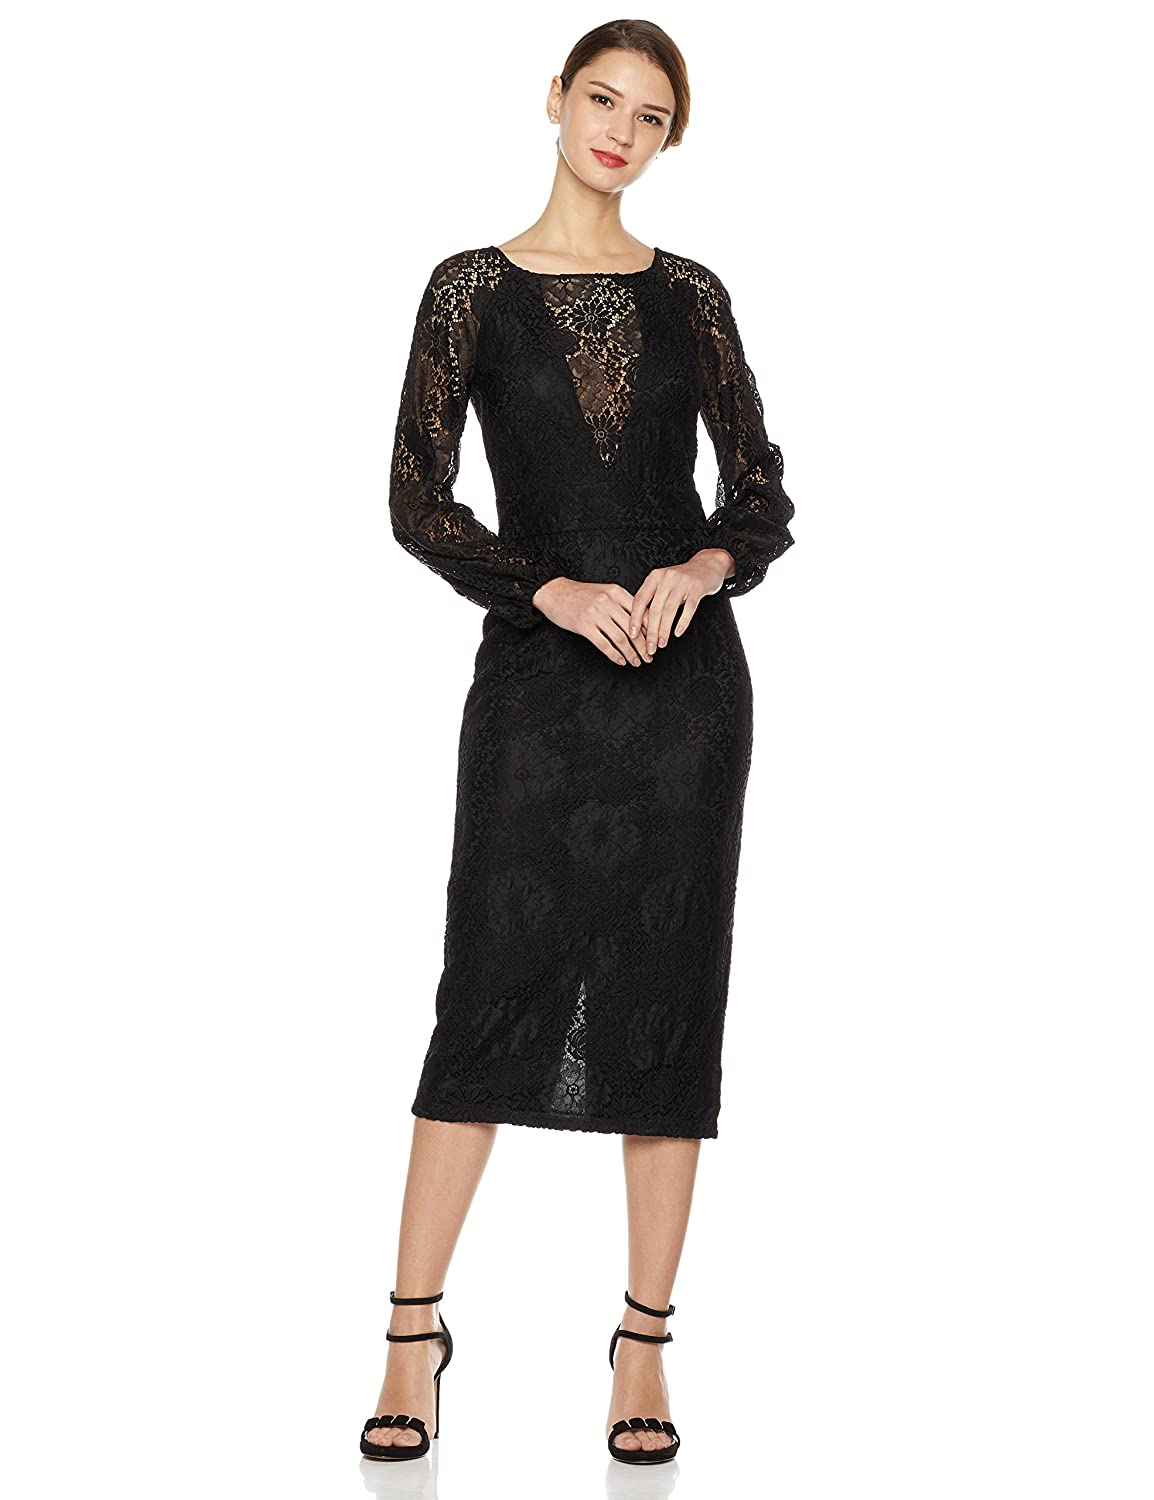 1888acac An Amazon brand. Calf-length sheath dress featuring floral lace overlay  with sheer illusion V-neckline and puffed long sleeves. Back zipper, fully  lined